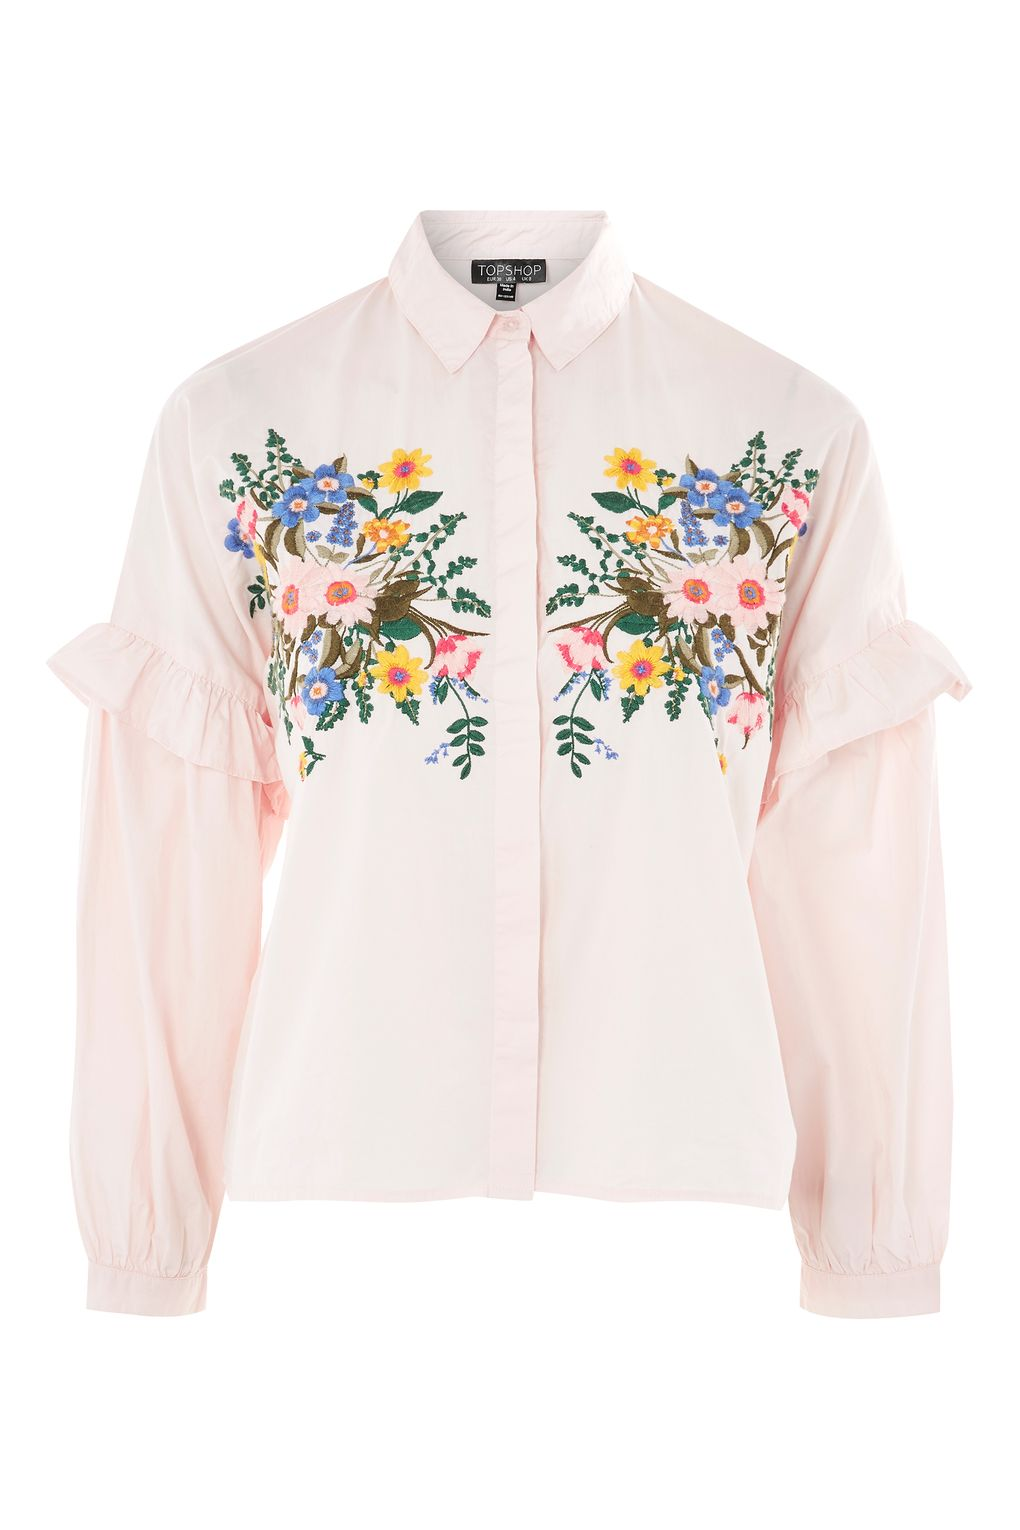 Floral embroidered shirt shopperboard